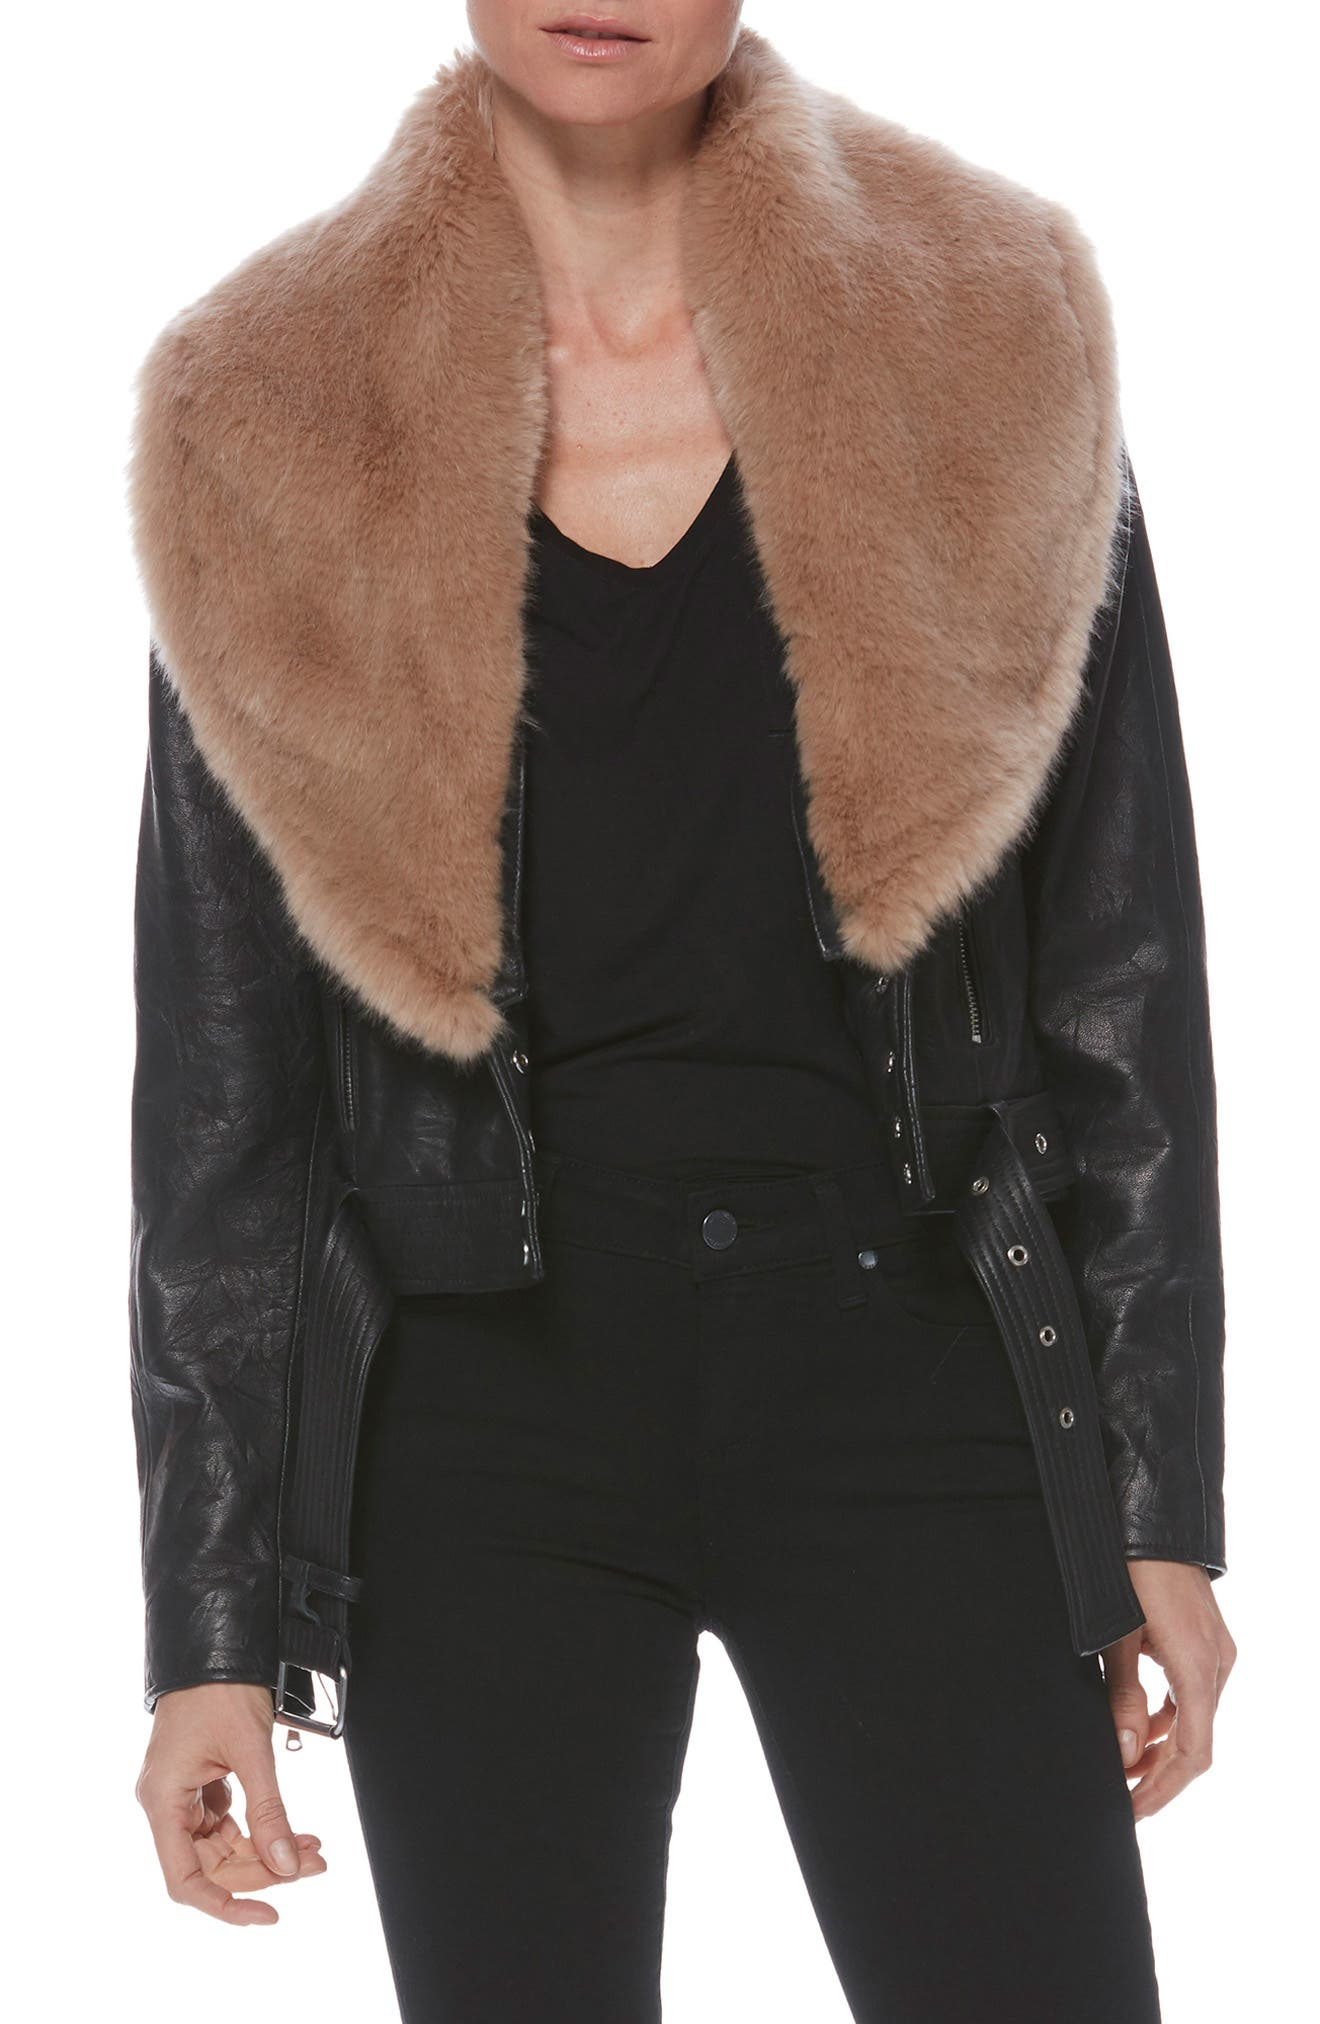 Rizza Lambskin Leather Moto Jacket with Removable Faux Fur Collar,                             Alternate thumbnail 10, color,                             BLACK